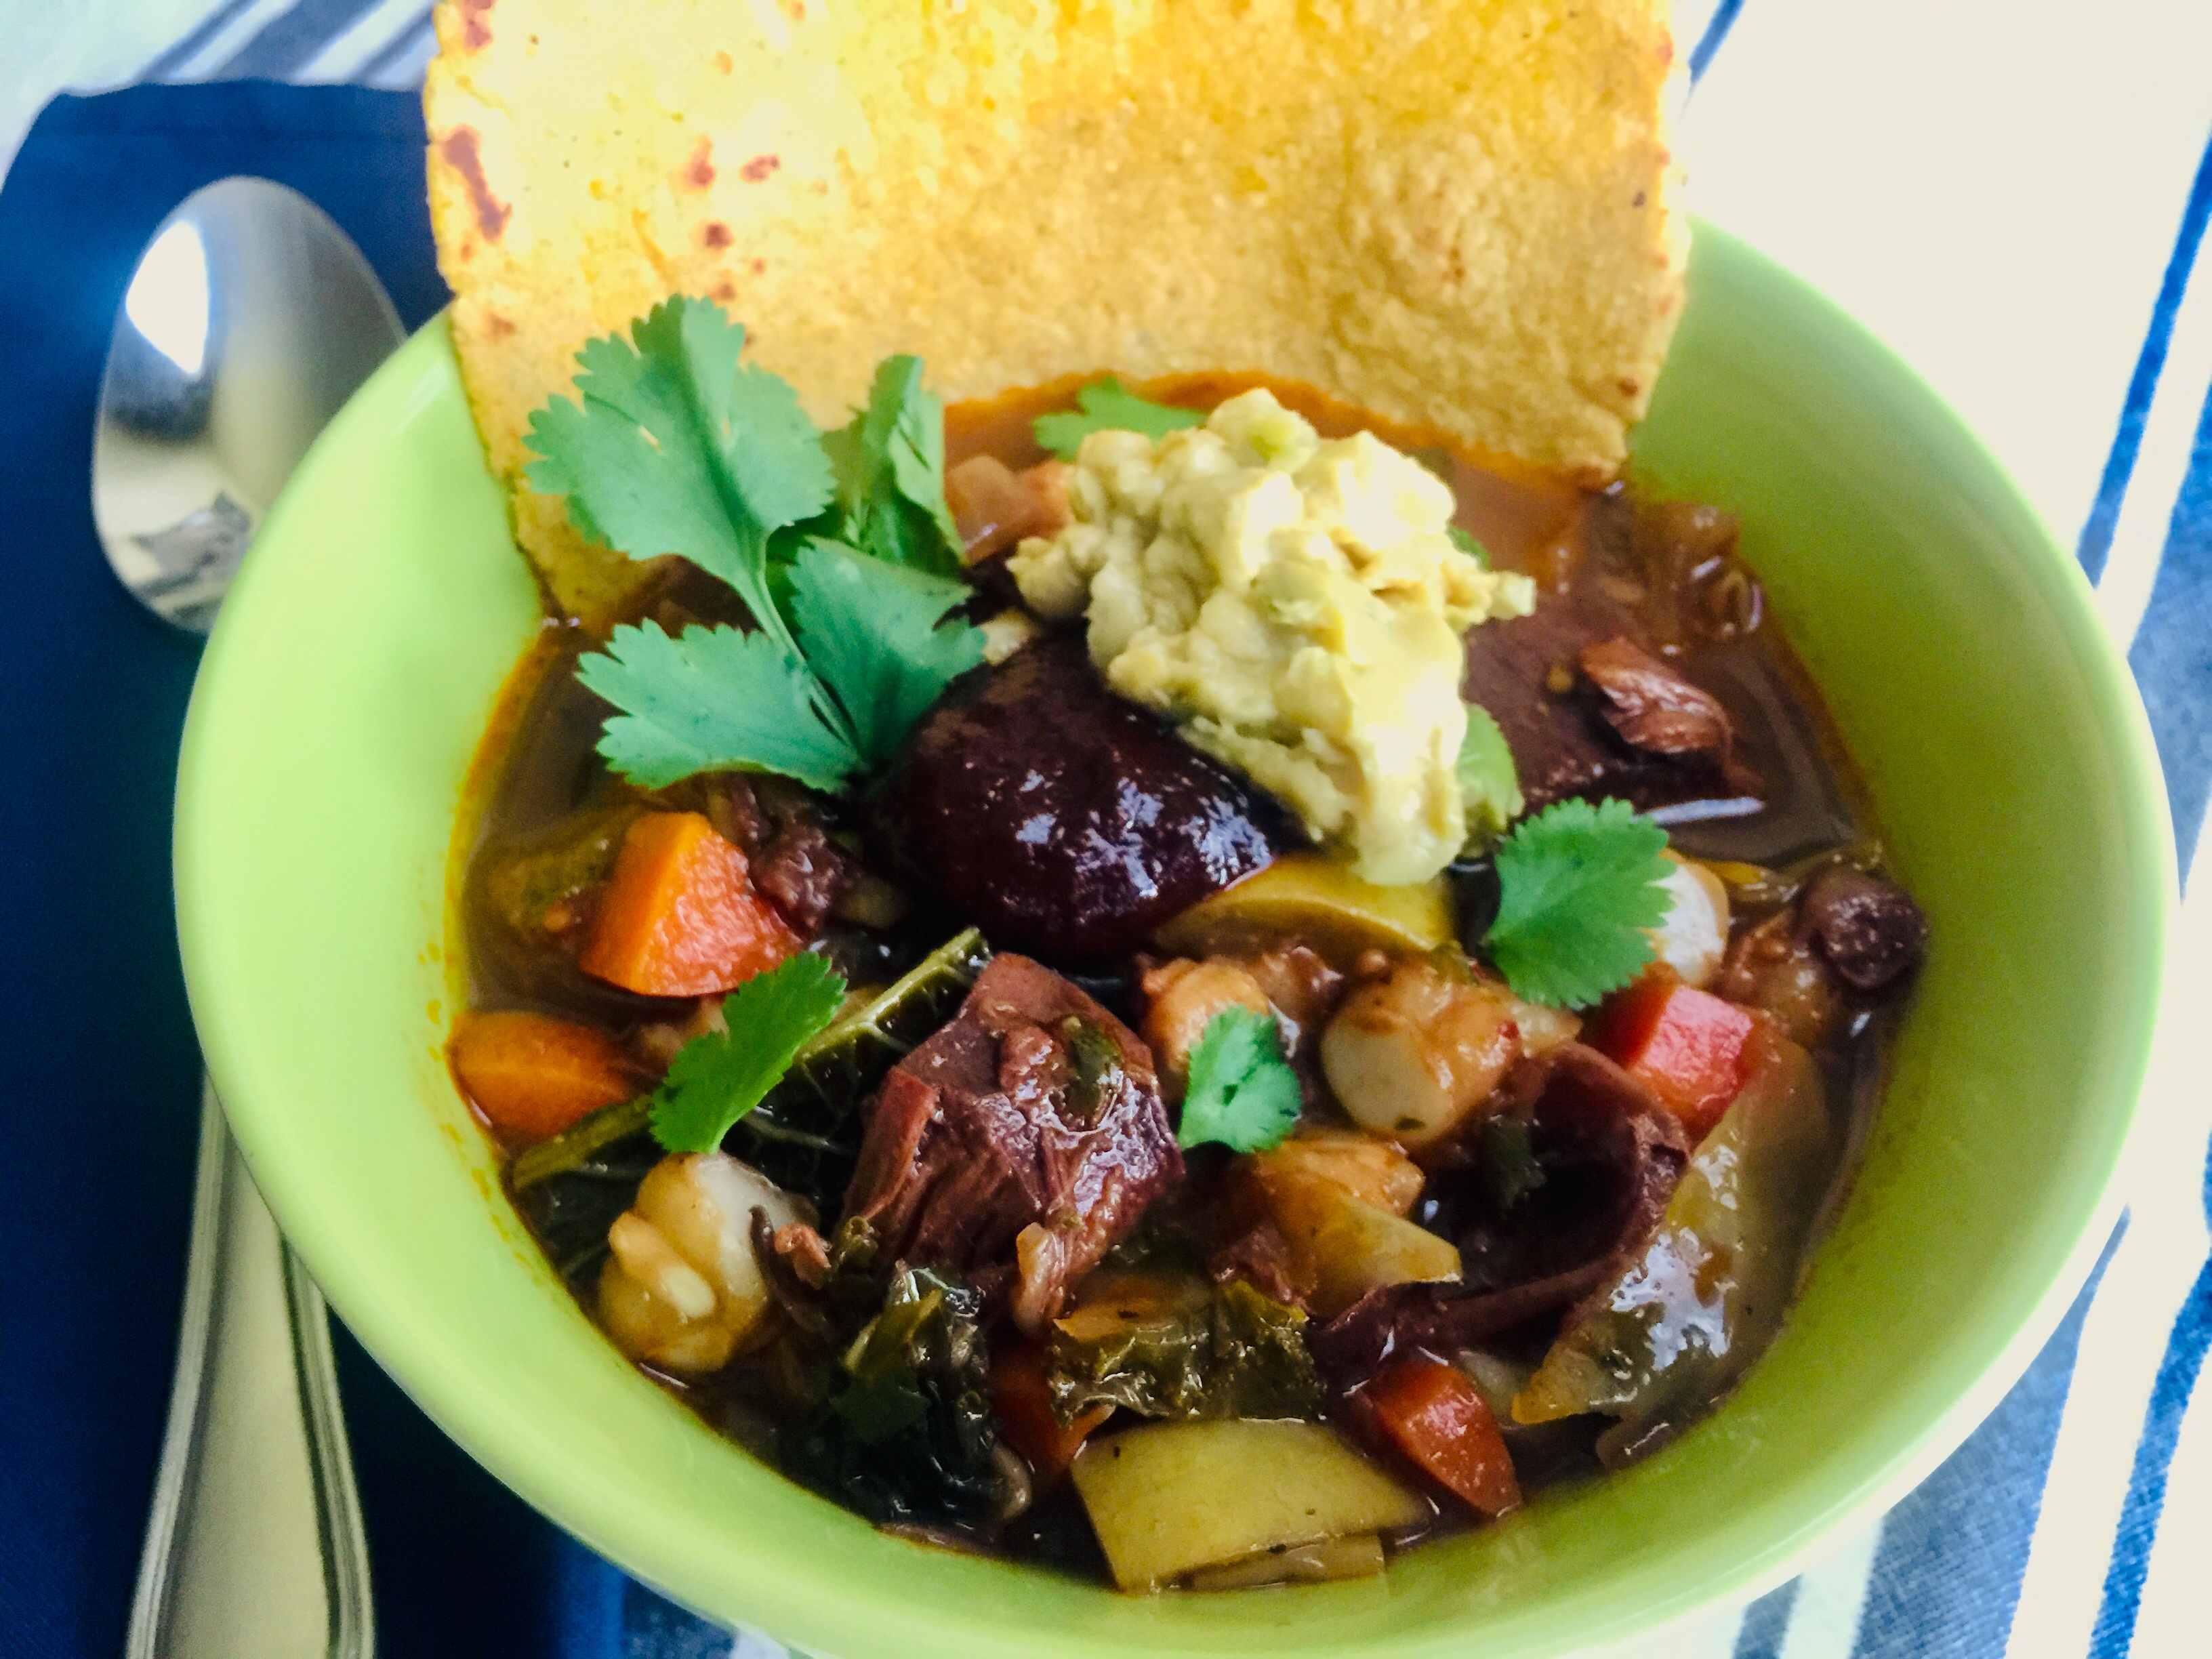 Scrumptious bowl of jackfruit posole with a homemade tortilla